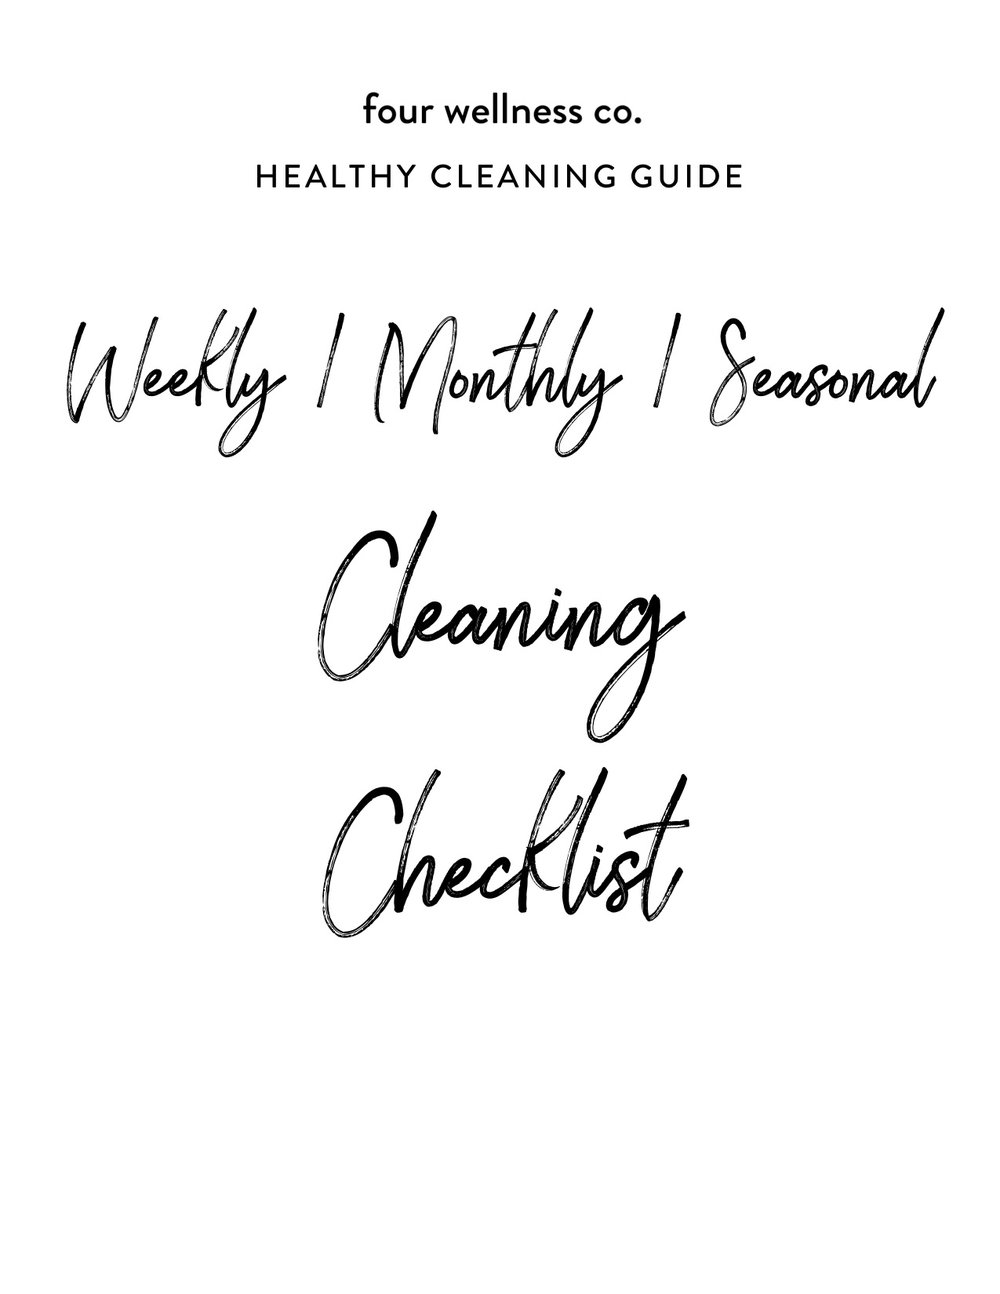 Healthy Cleaning Guide // Weekly / Monthly / Seasonal Cleaning Checklist for a healthy home // Get the full guide to chemical-free cleaning for a healthy home at fourwellness.co/healthy-cleaning-guide #cleaning #nontoxic #healthyhome